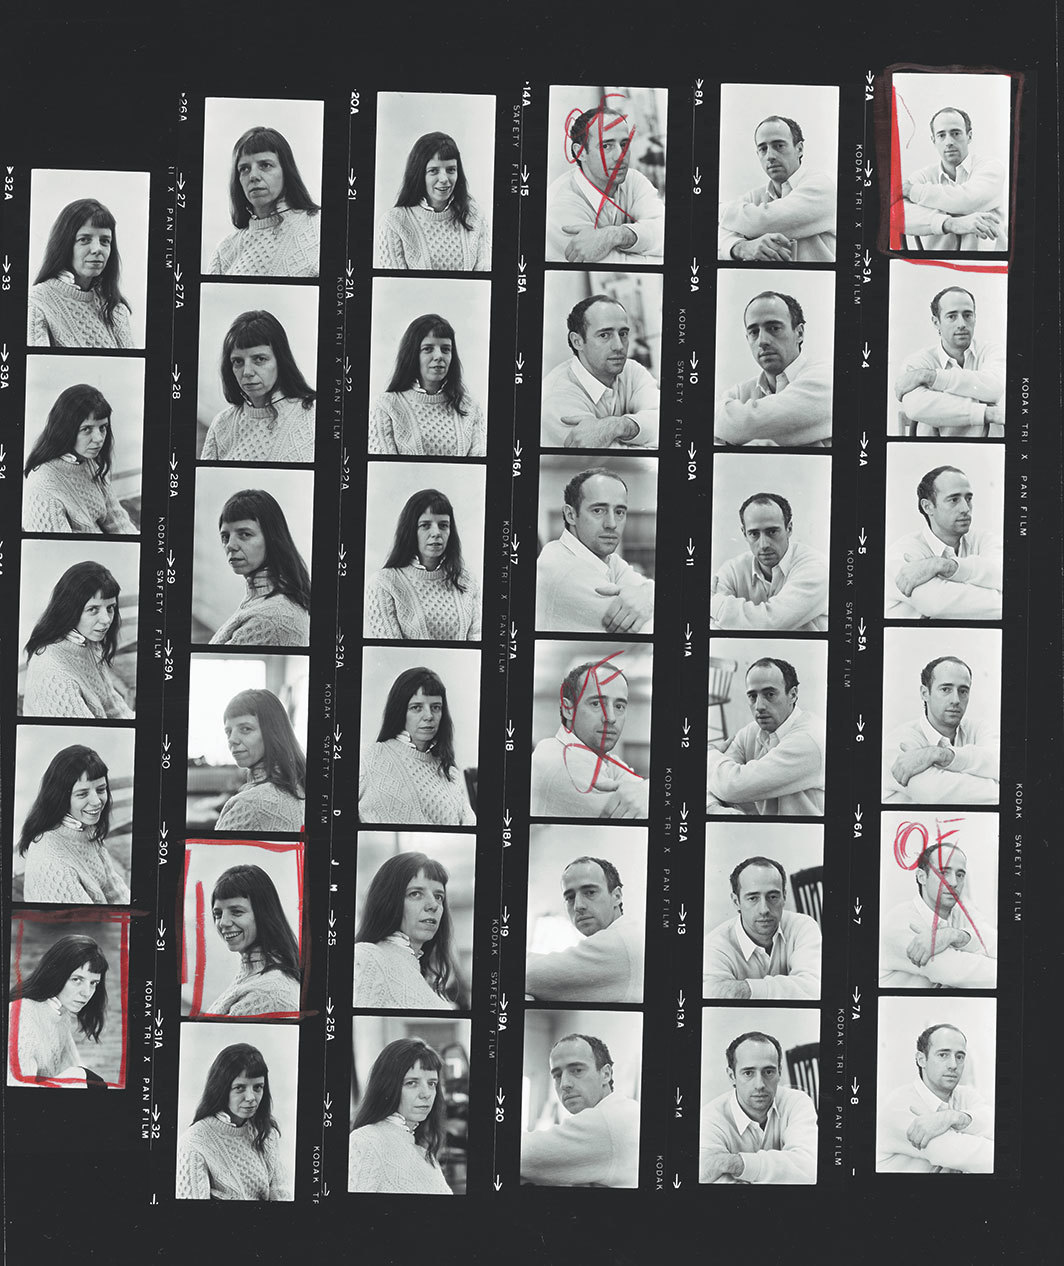 Al Giese's contact sheet of Jill Johnson and Robert Morris, New York, March 3, 1965.